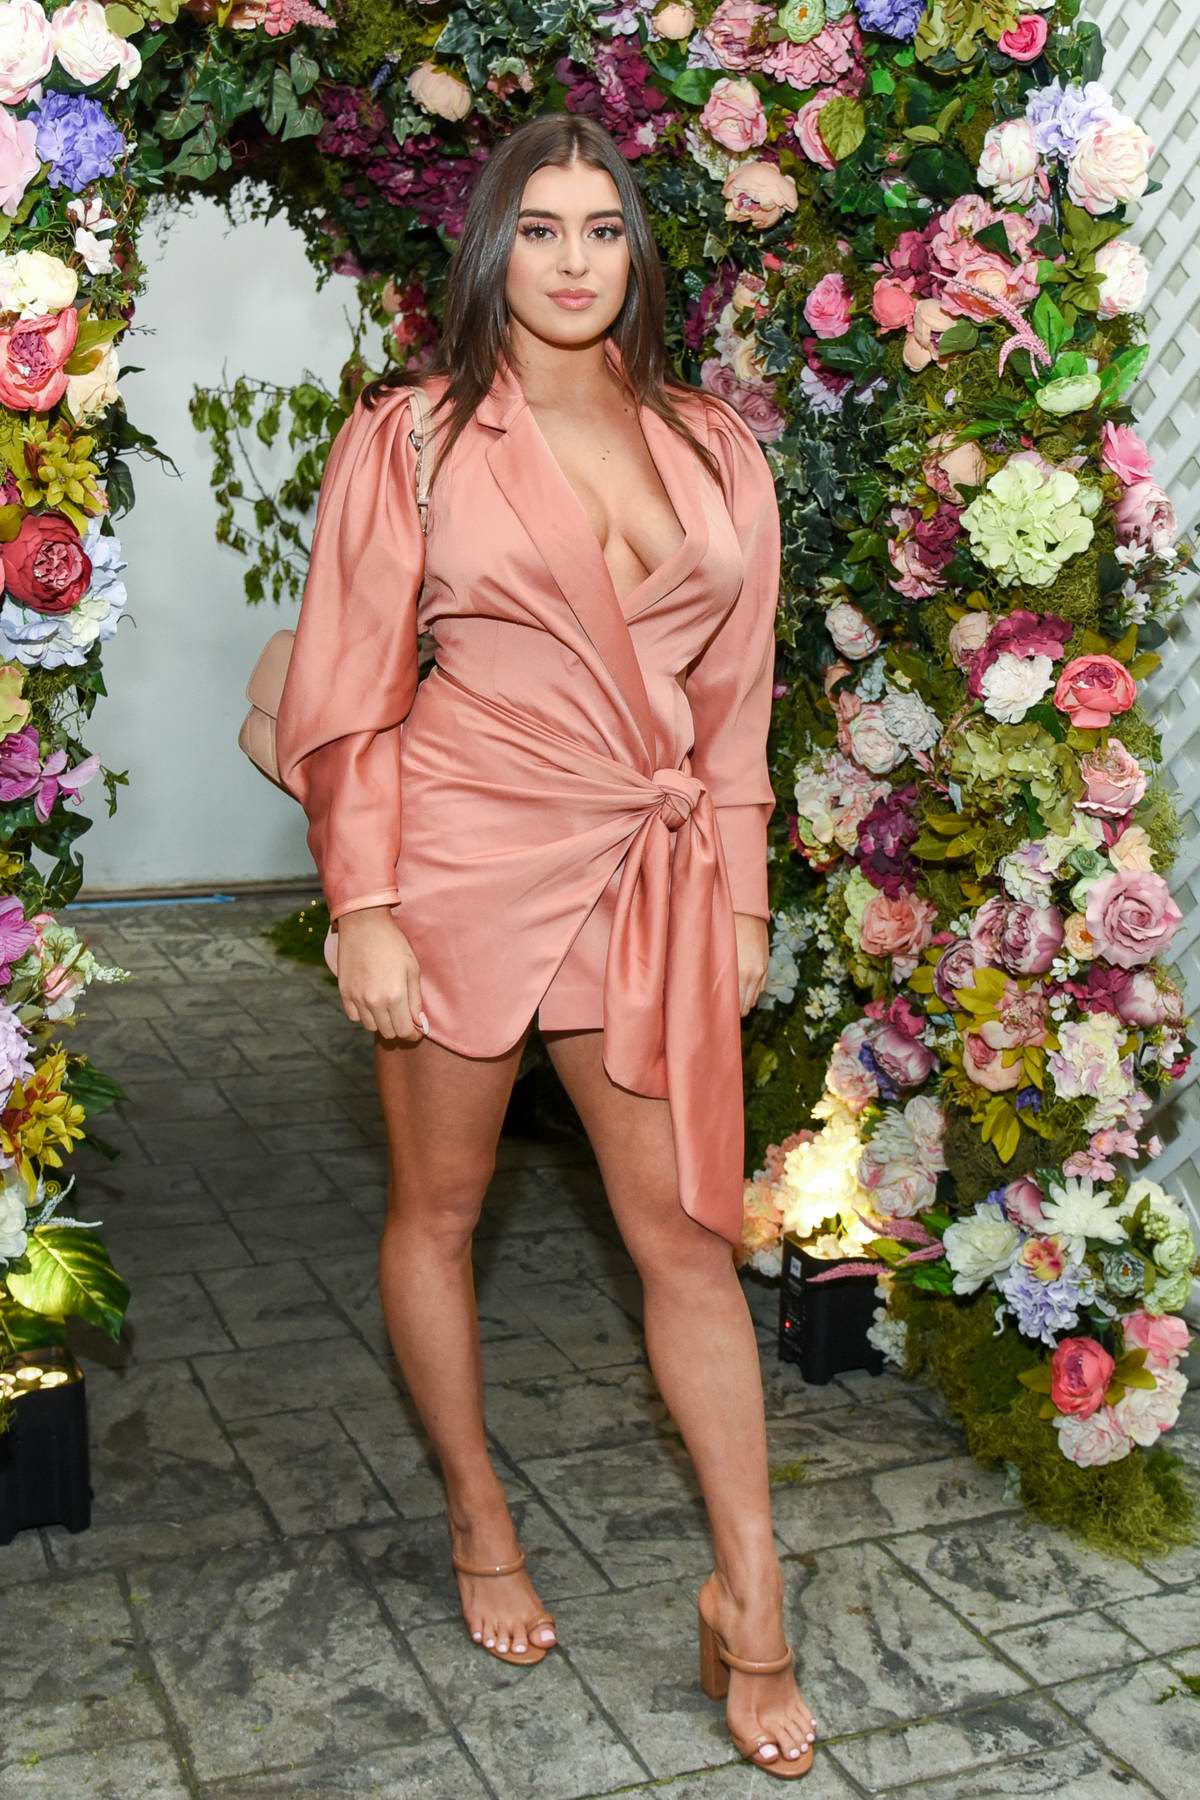 Kalani Hilliker attends Betsey Johnson x Loren Gray Prom Collection Garden Party in West Hollywood, California